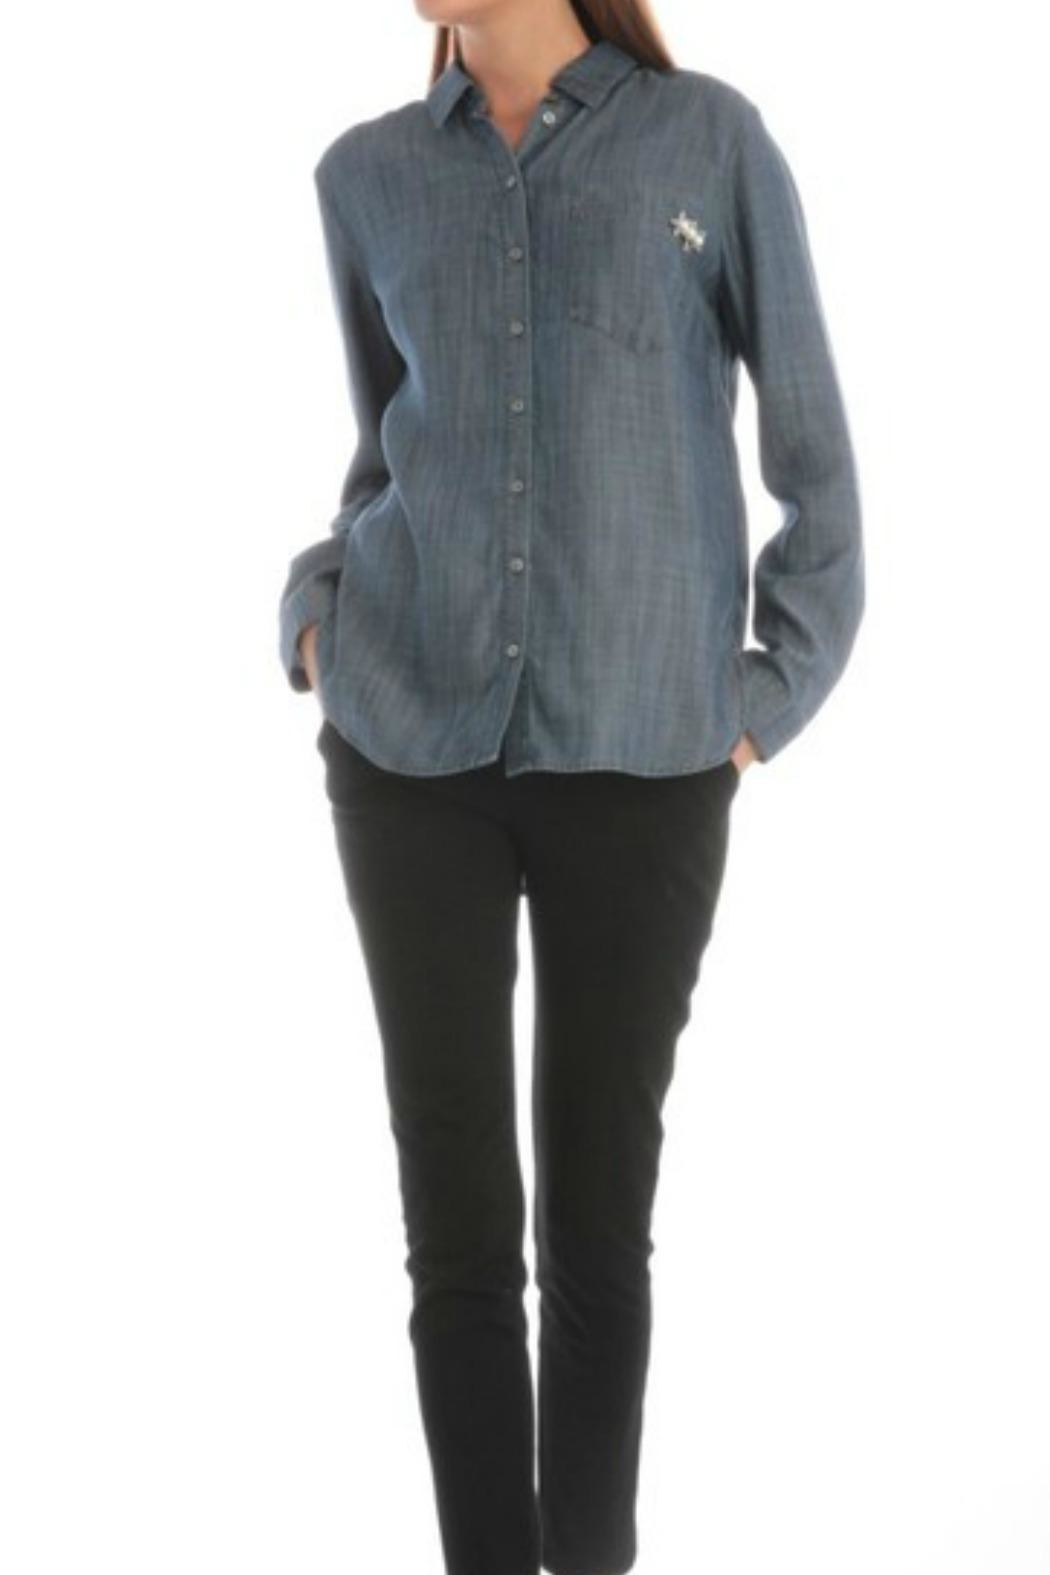 Current Air Jean Button-Down Shirt - Front Full Image